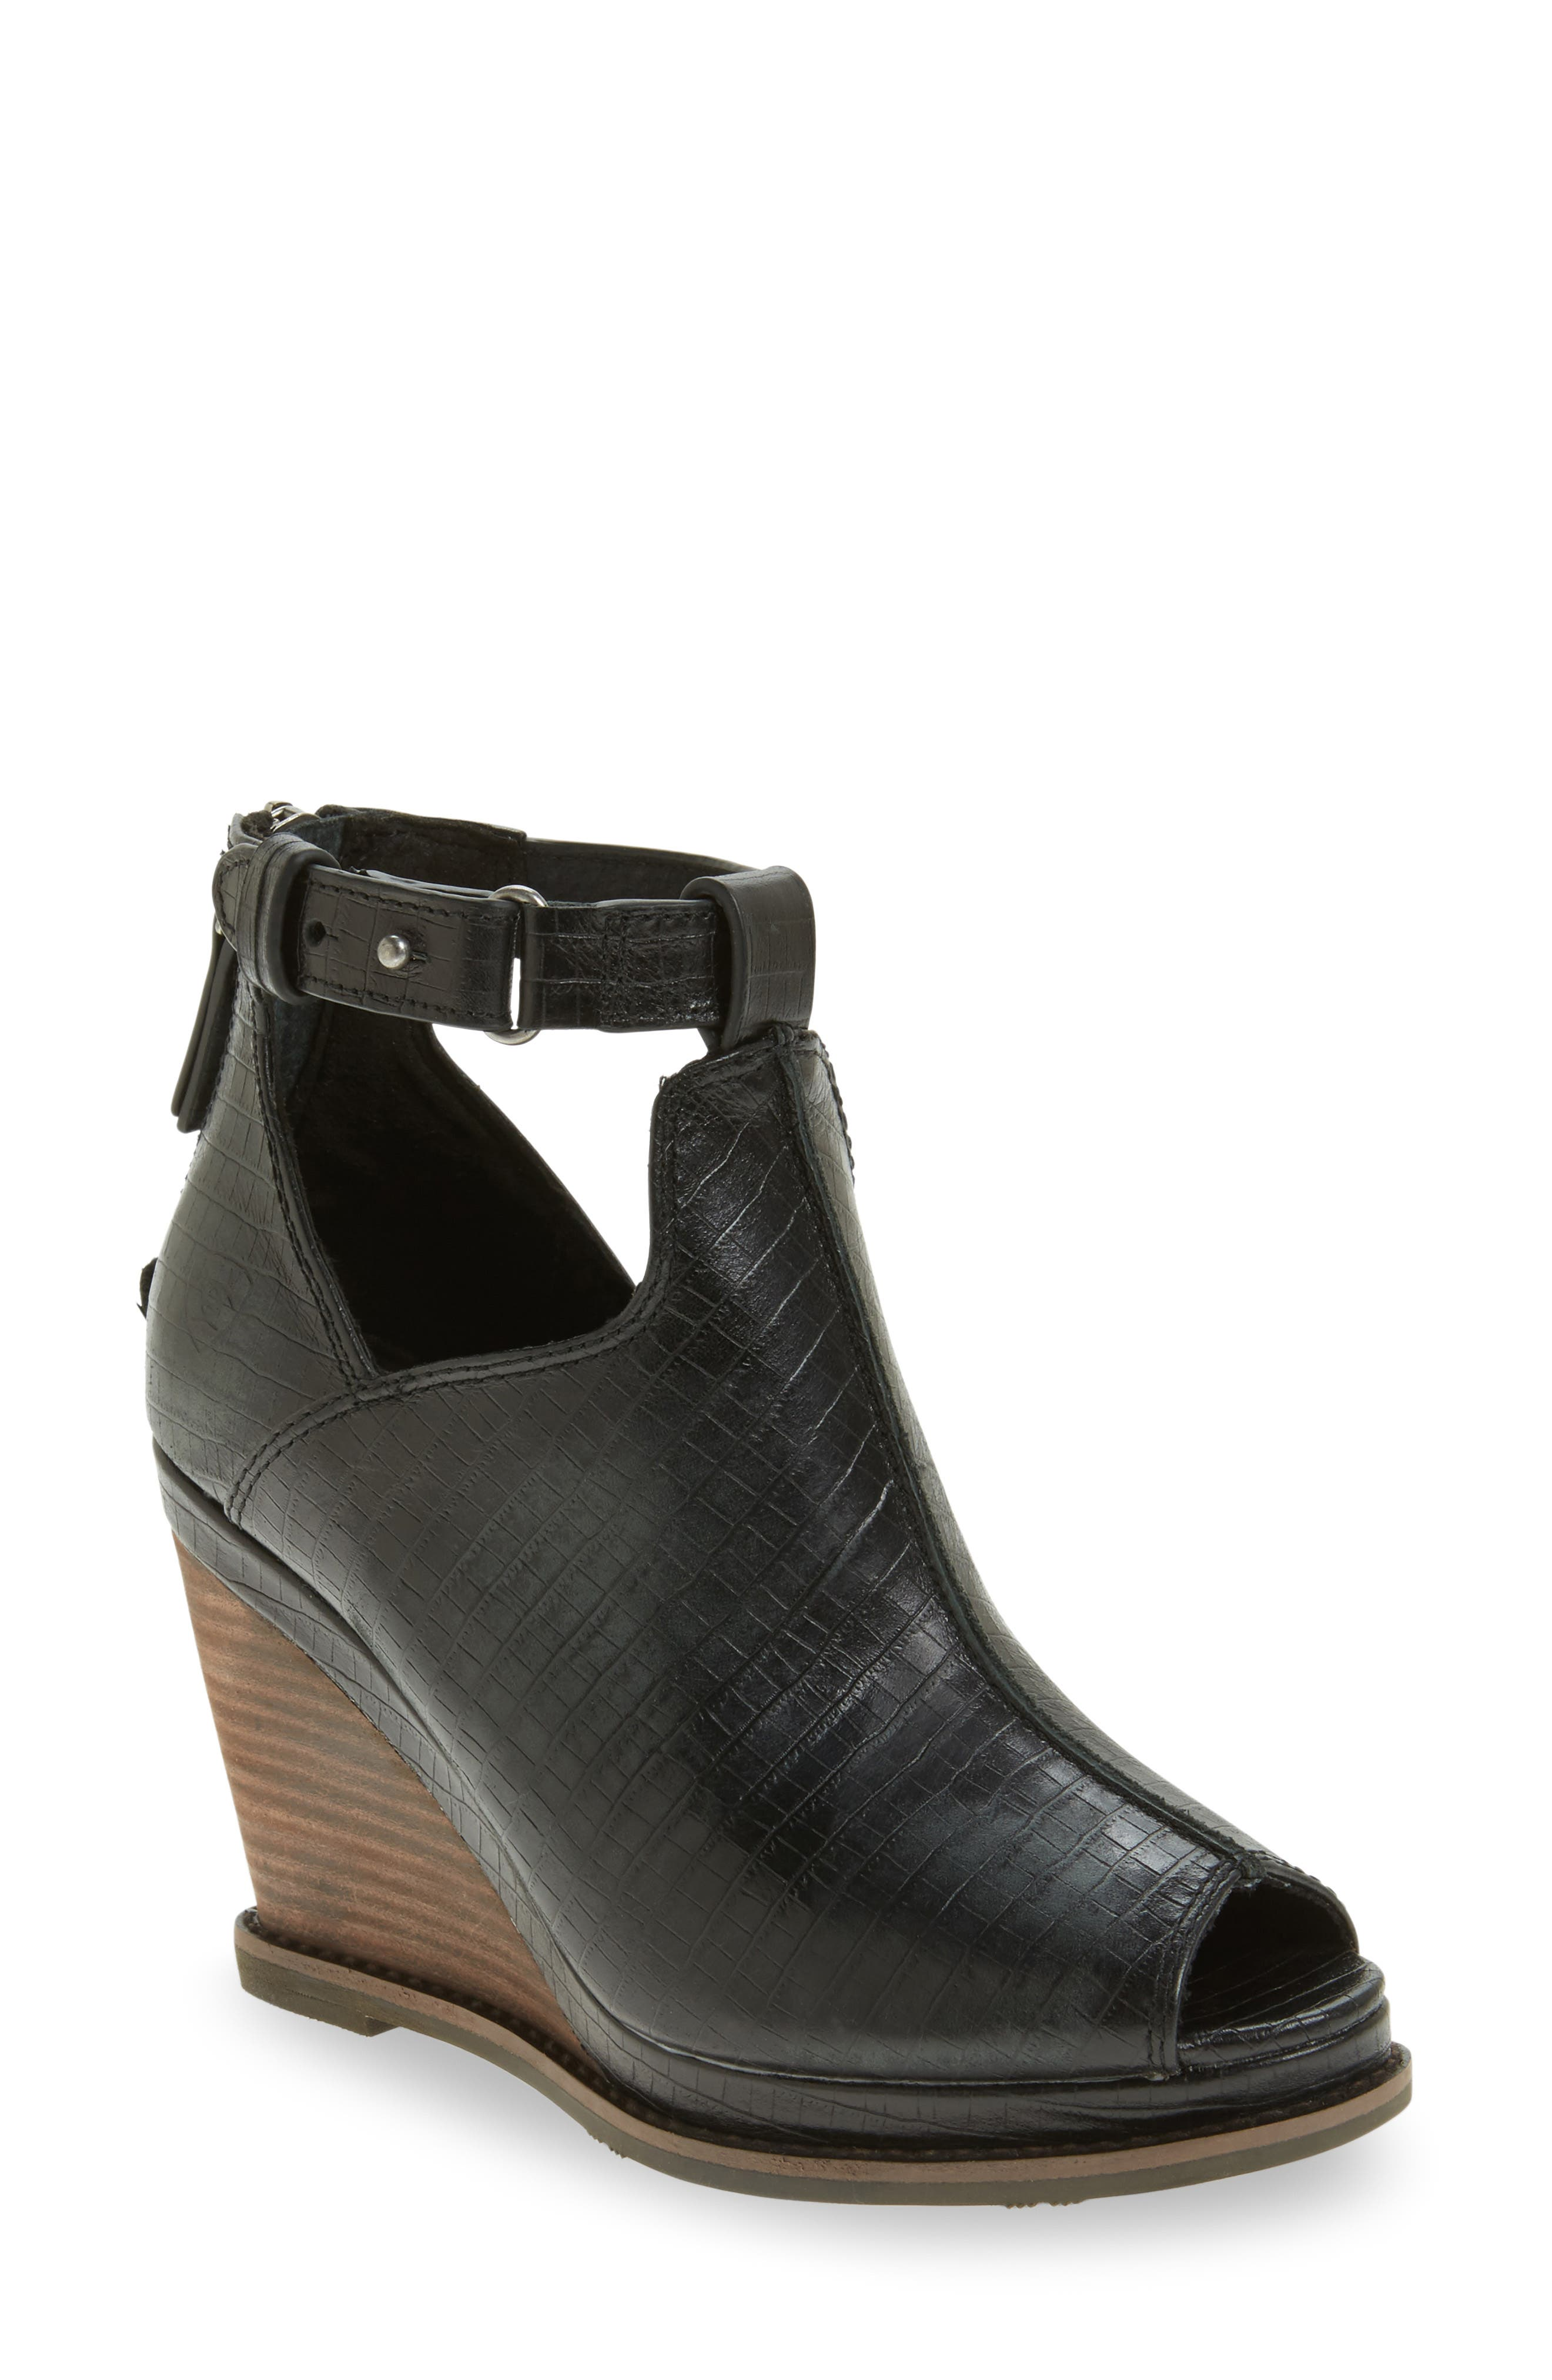 Backstage Wedge Bootie,                             Main thumbnail 1, color,                             001